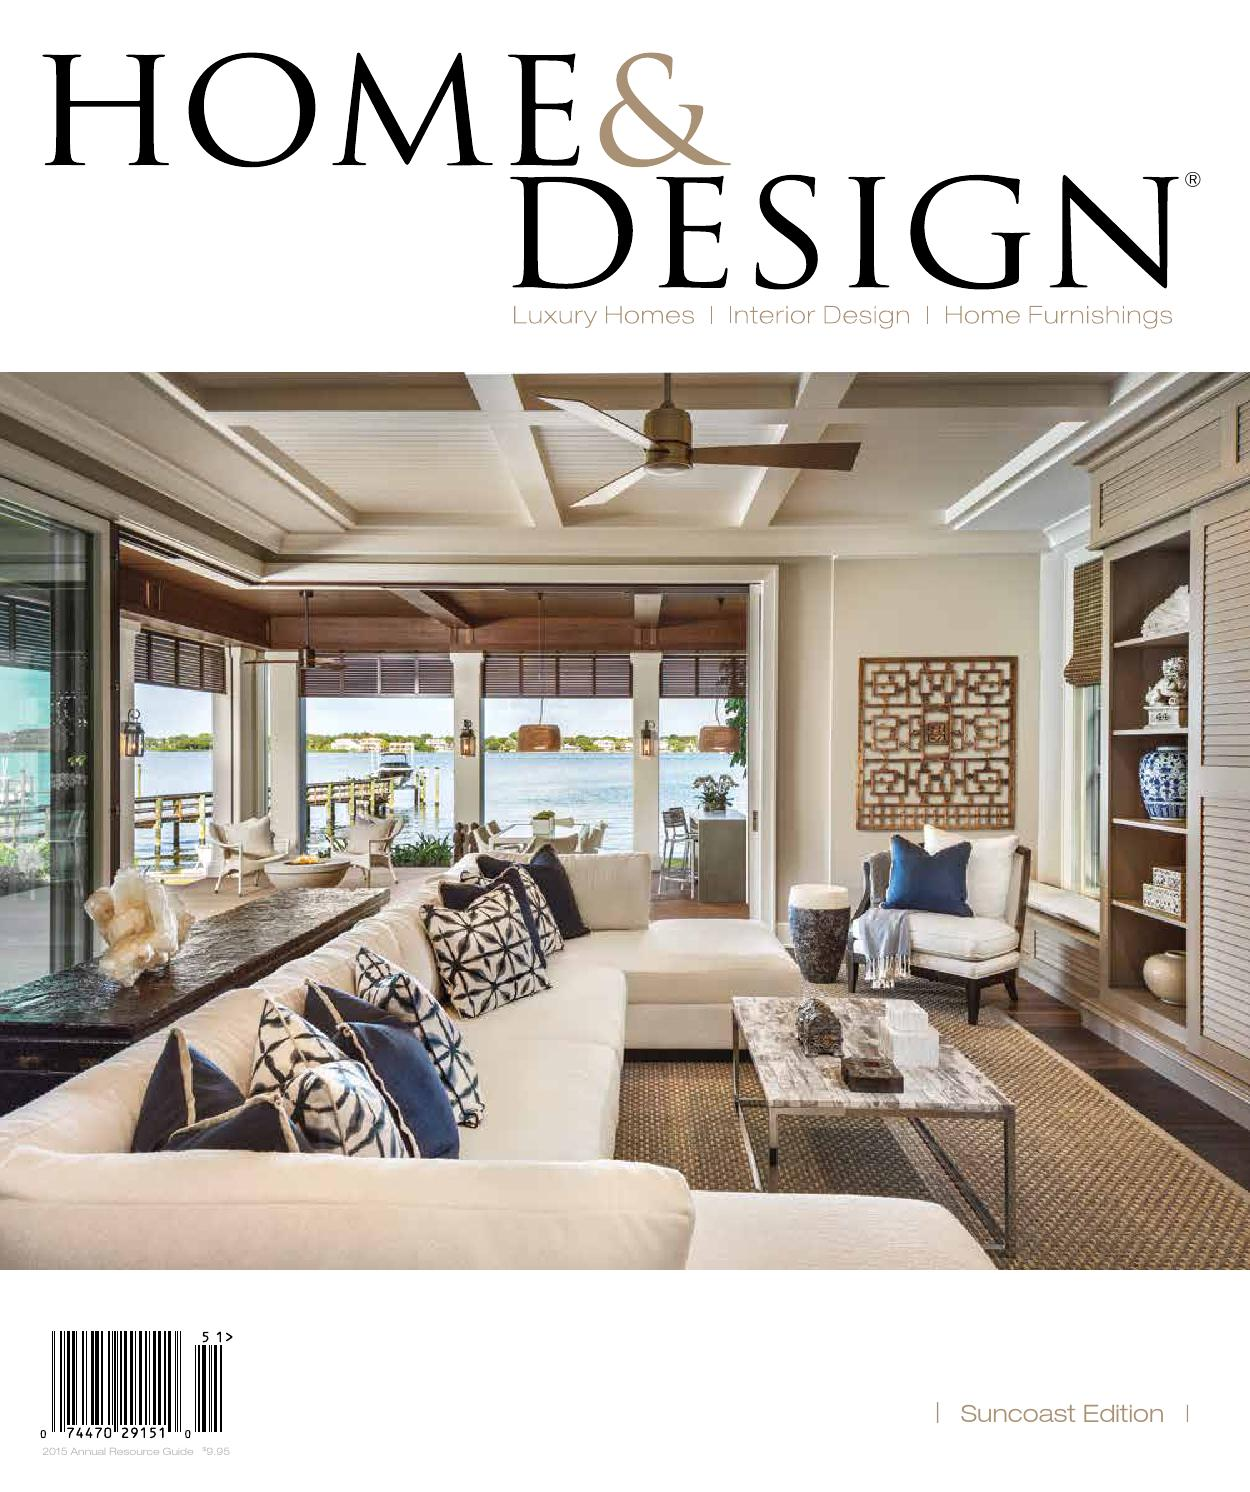 Home design magazine annual resource guide 2015 for Home design resources